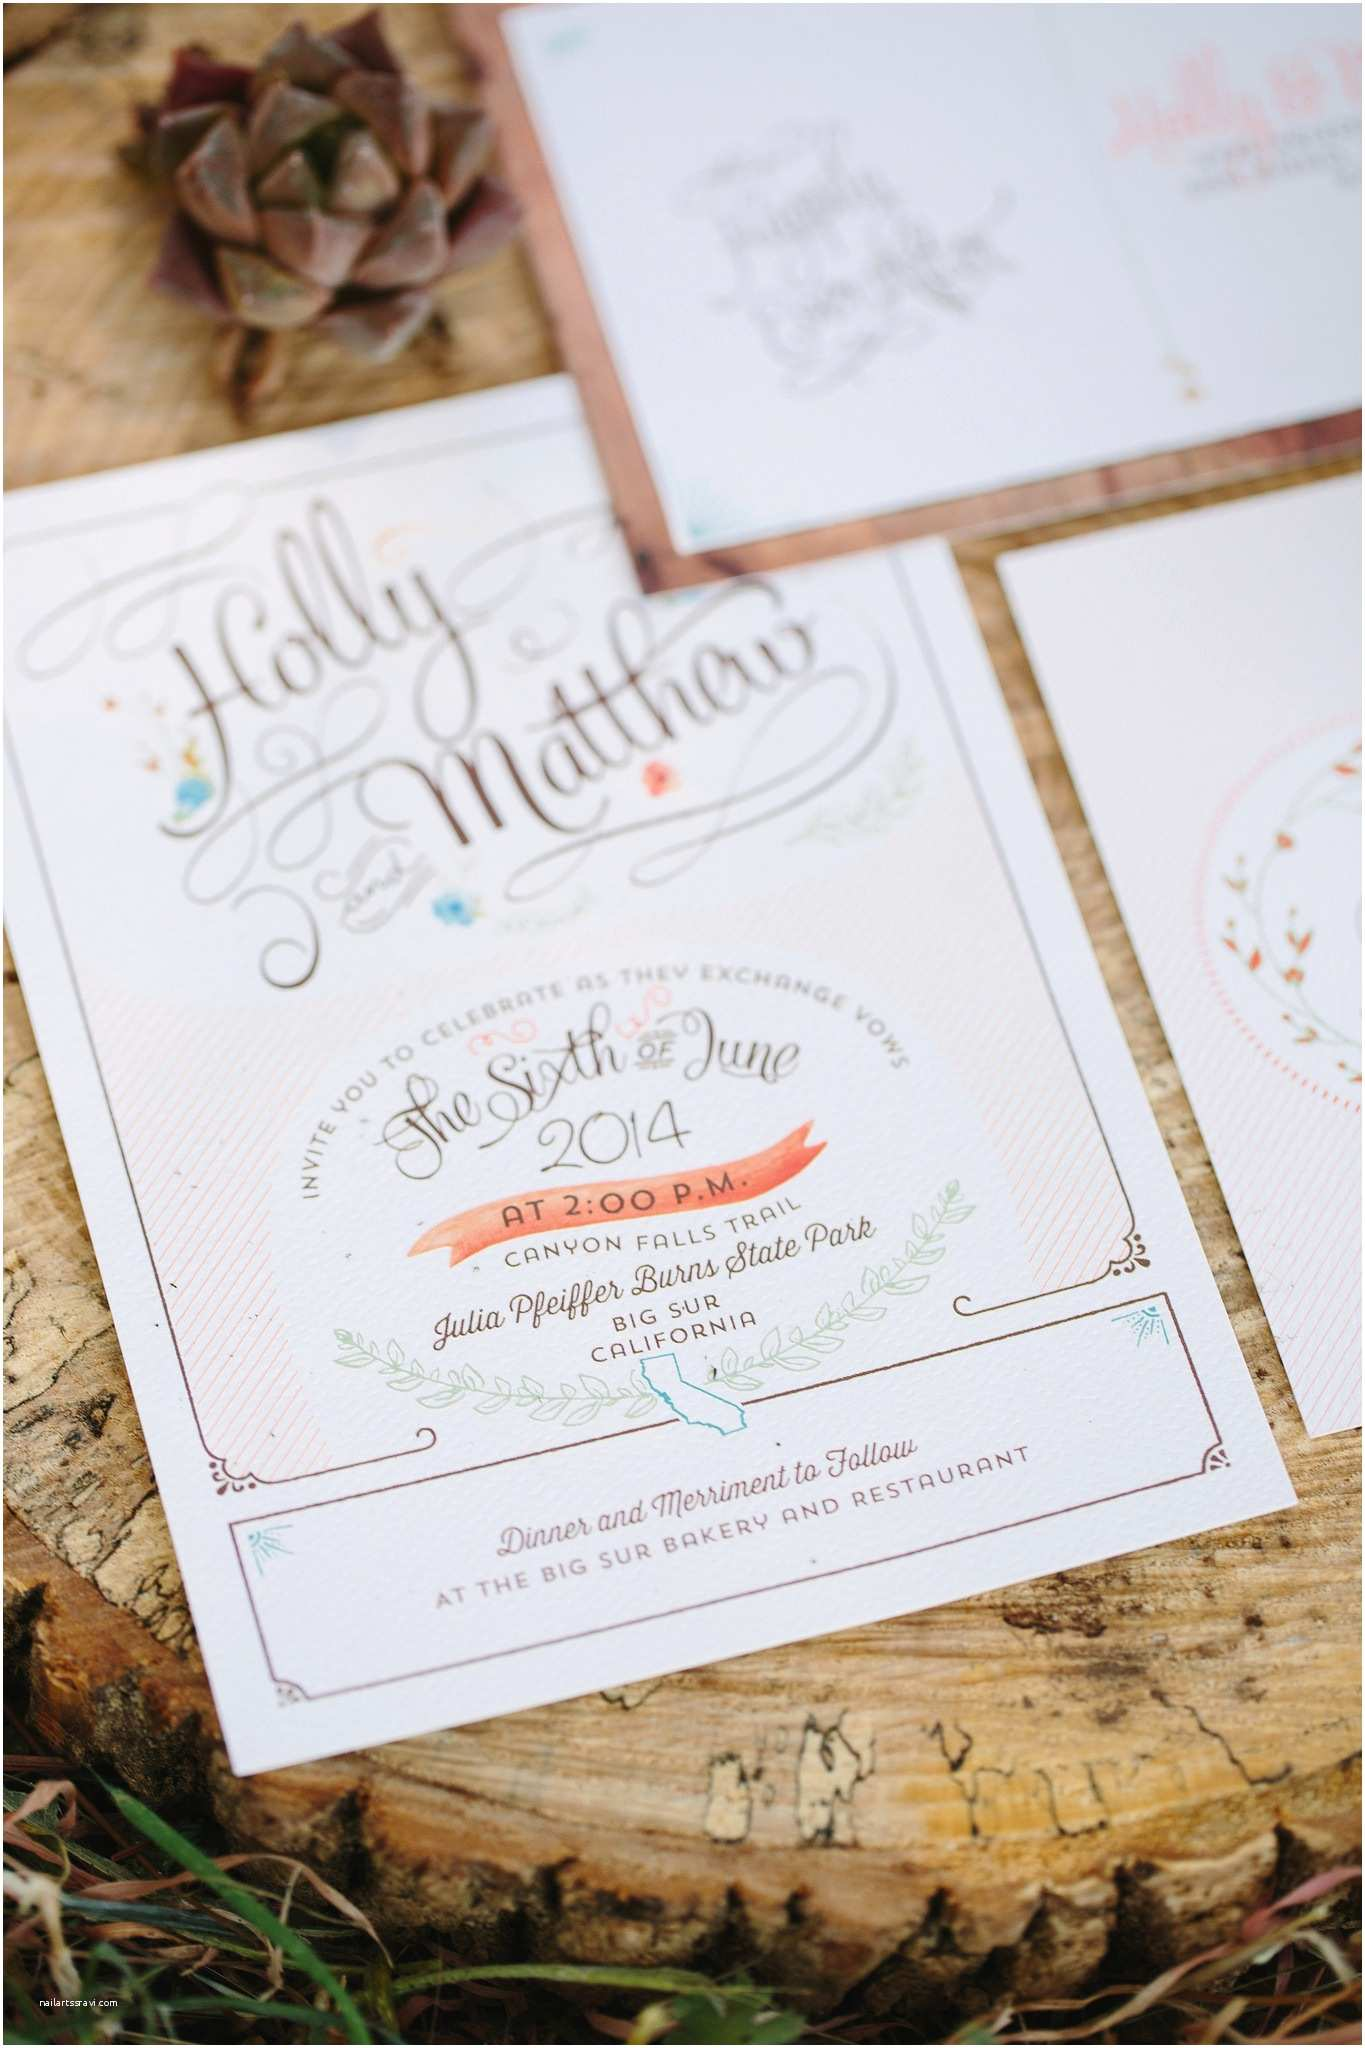 What Name Goes First On Wedding Invitations 5 Tips for Getting People to Rsvp to Your Wedding